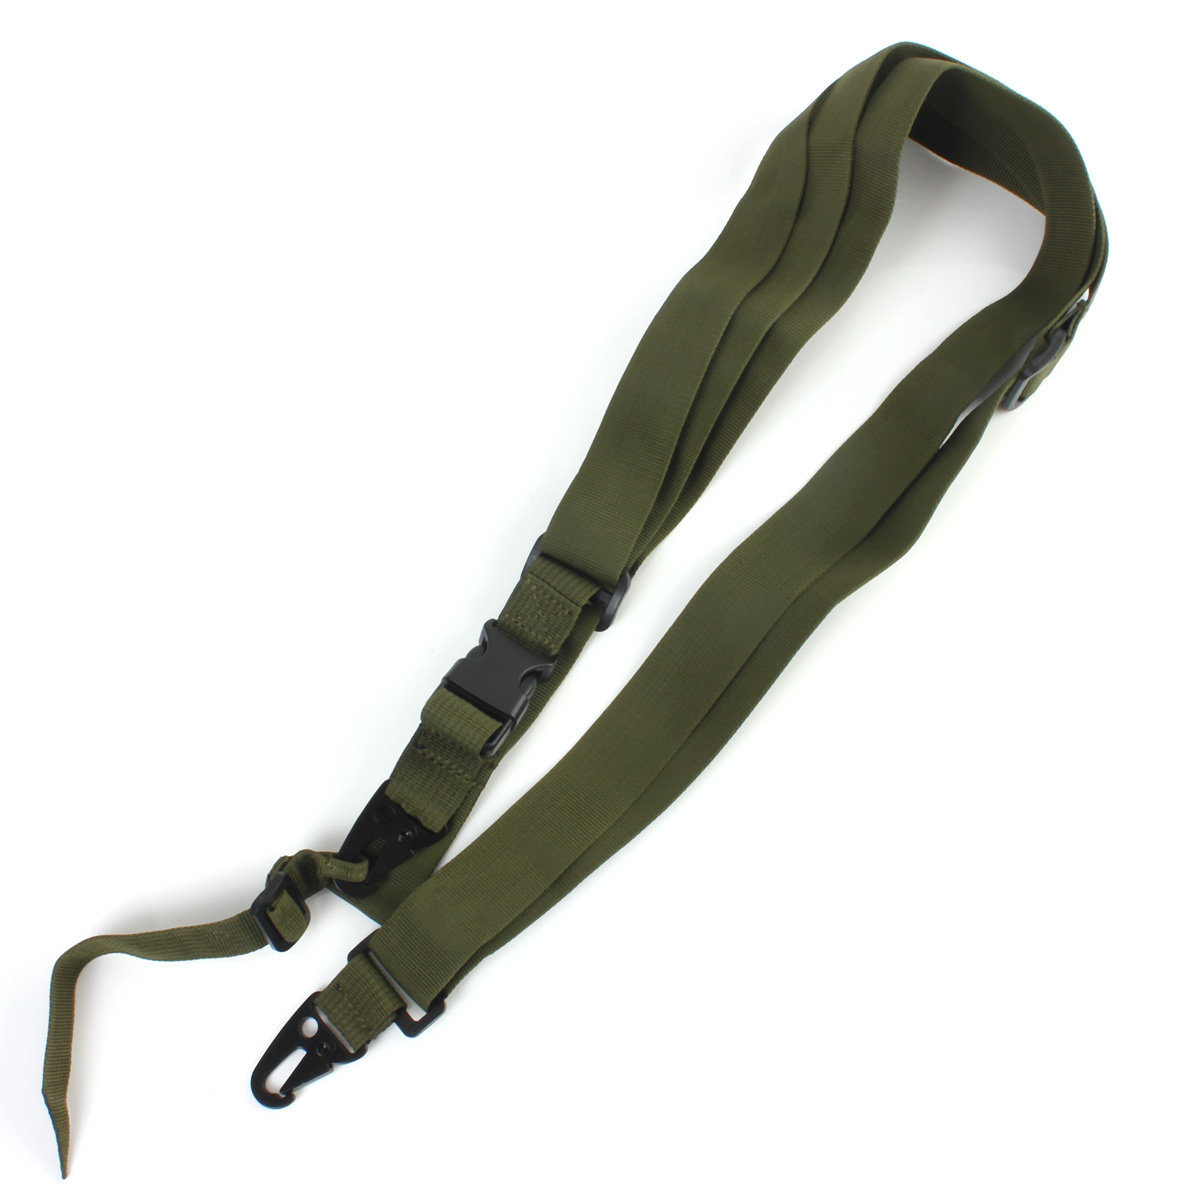 High quality Three Point Rifle Sling Adjustable Bungee Tactical Airsoft Gun Strap Paintball Gun Sling for